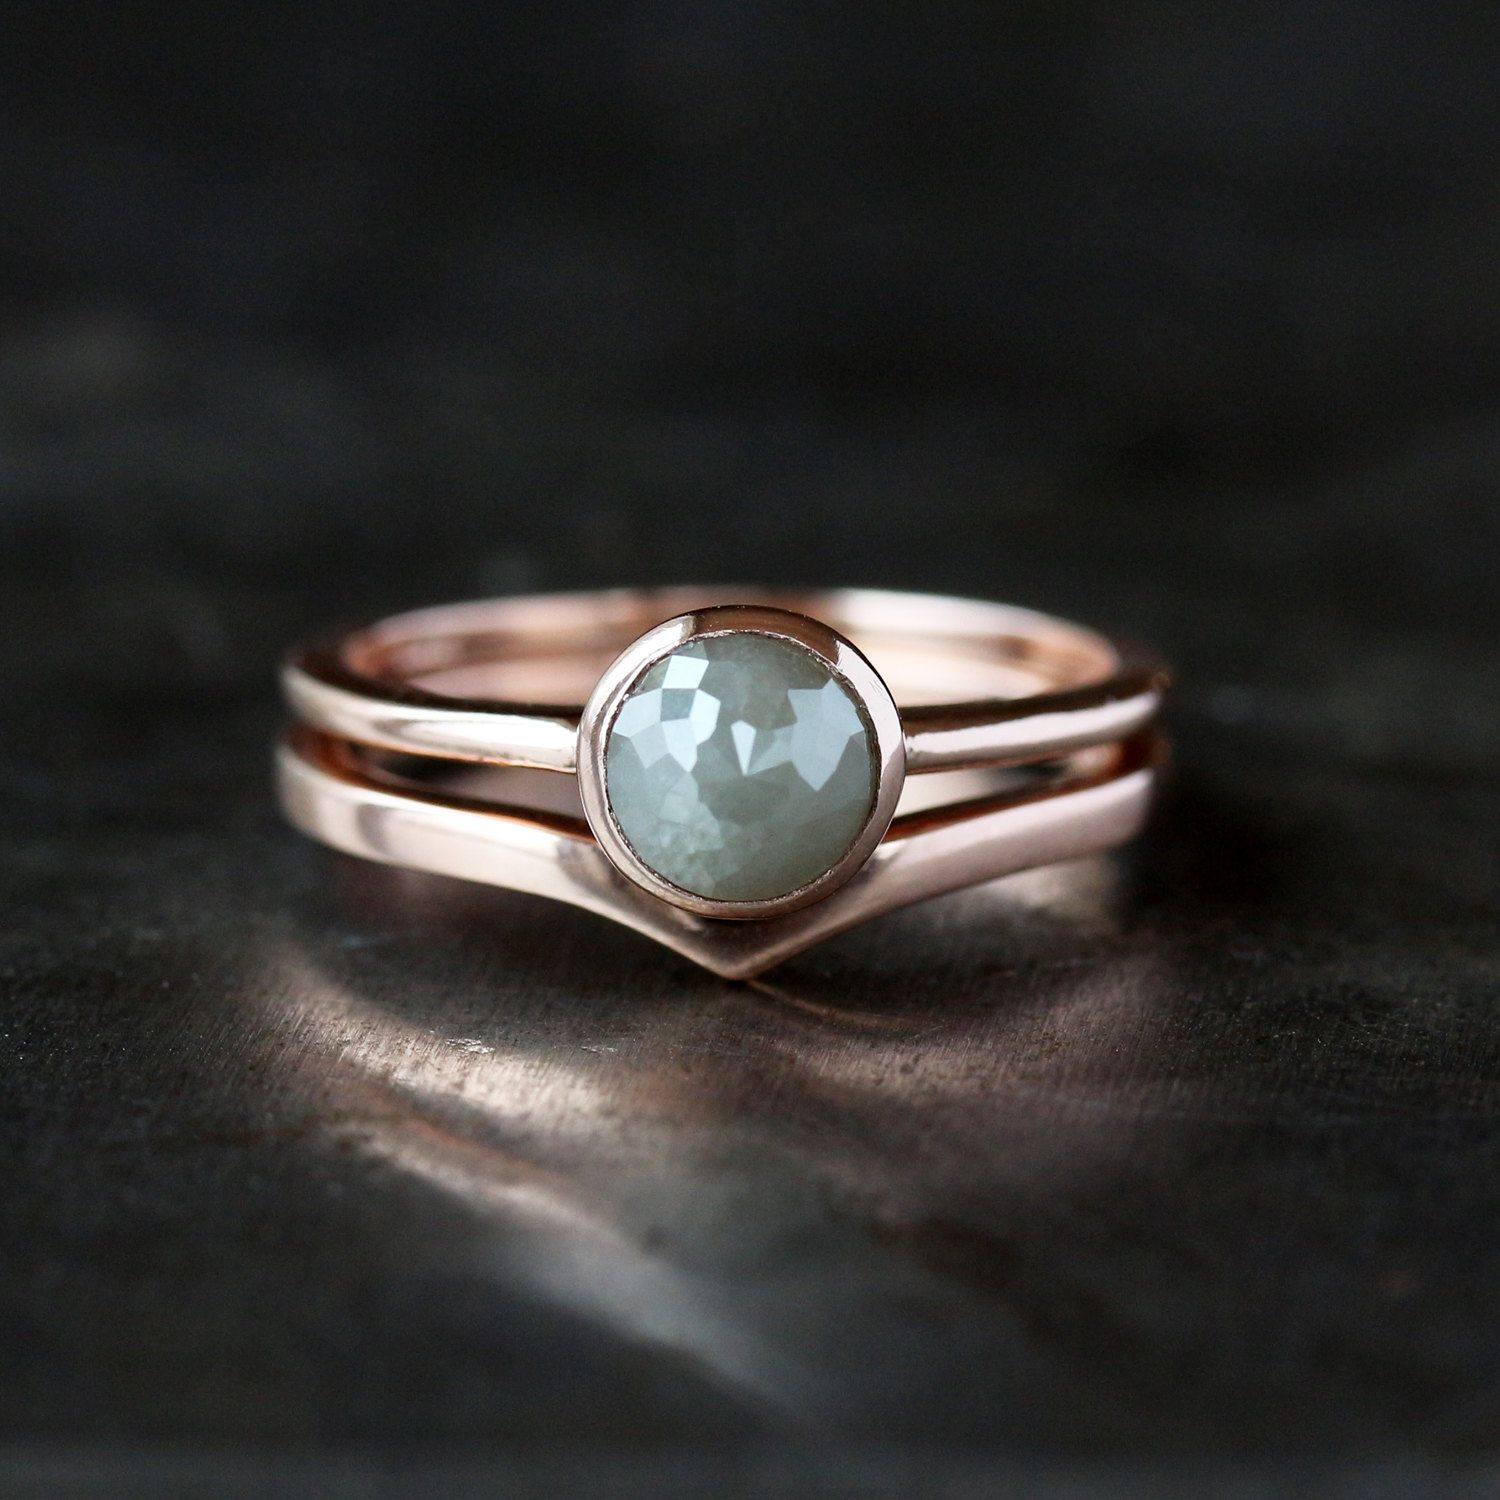 ring nature band contoured naples bands contour copy olivia ewing inspired curved twig wedding